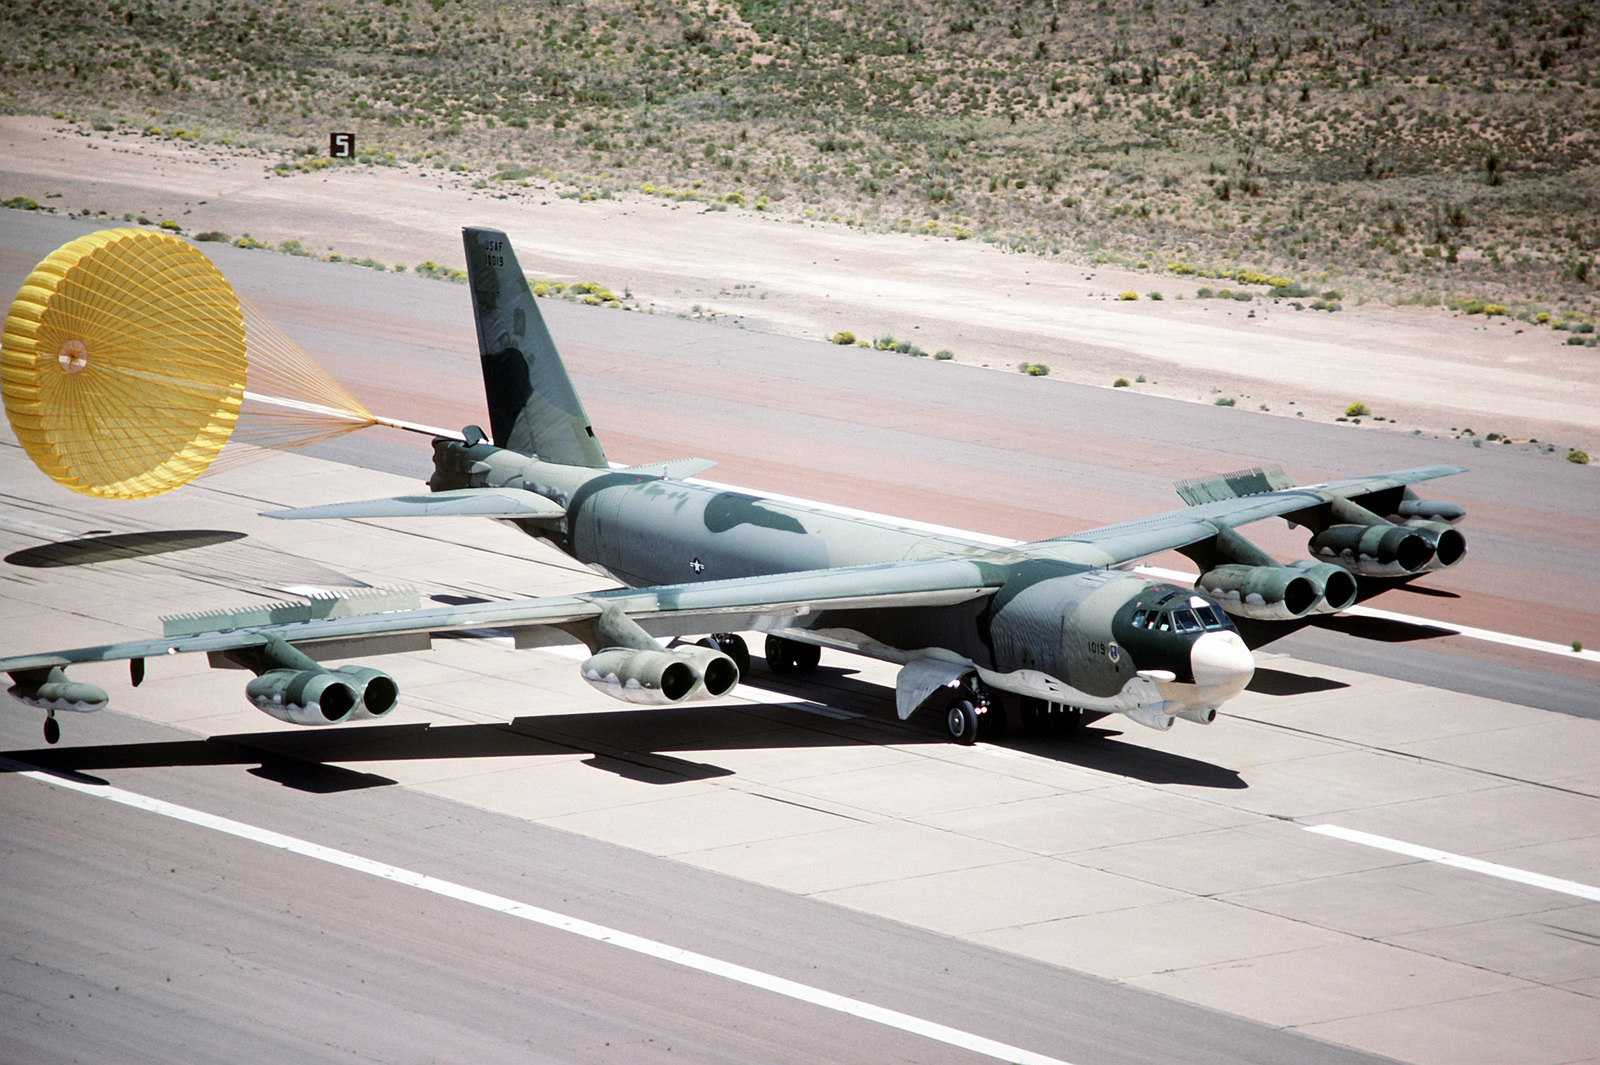 A B-52H Stratofortress aircraft lands with its rear drag chute deployed during exercise Busy Prairie II